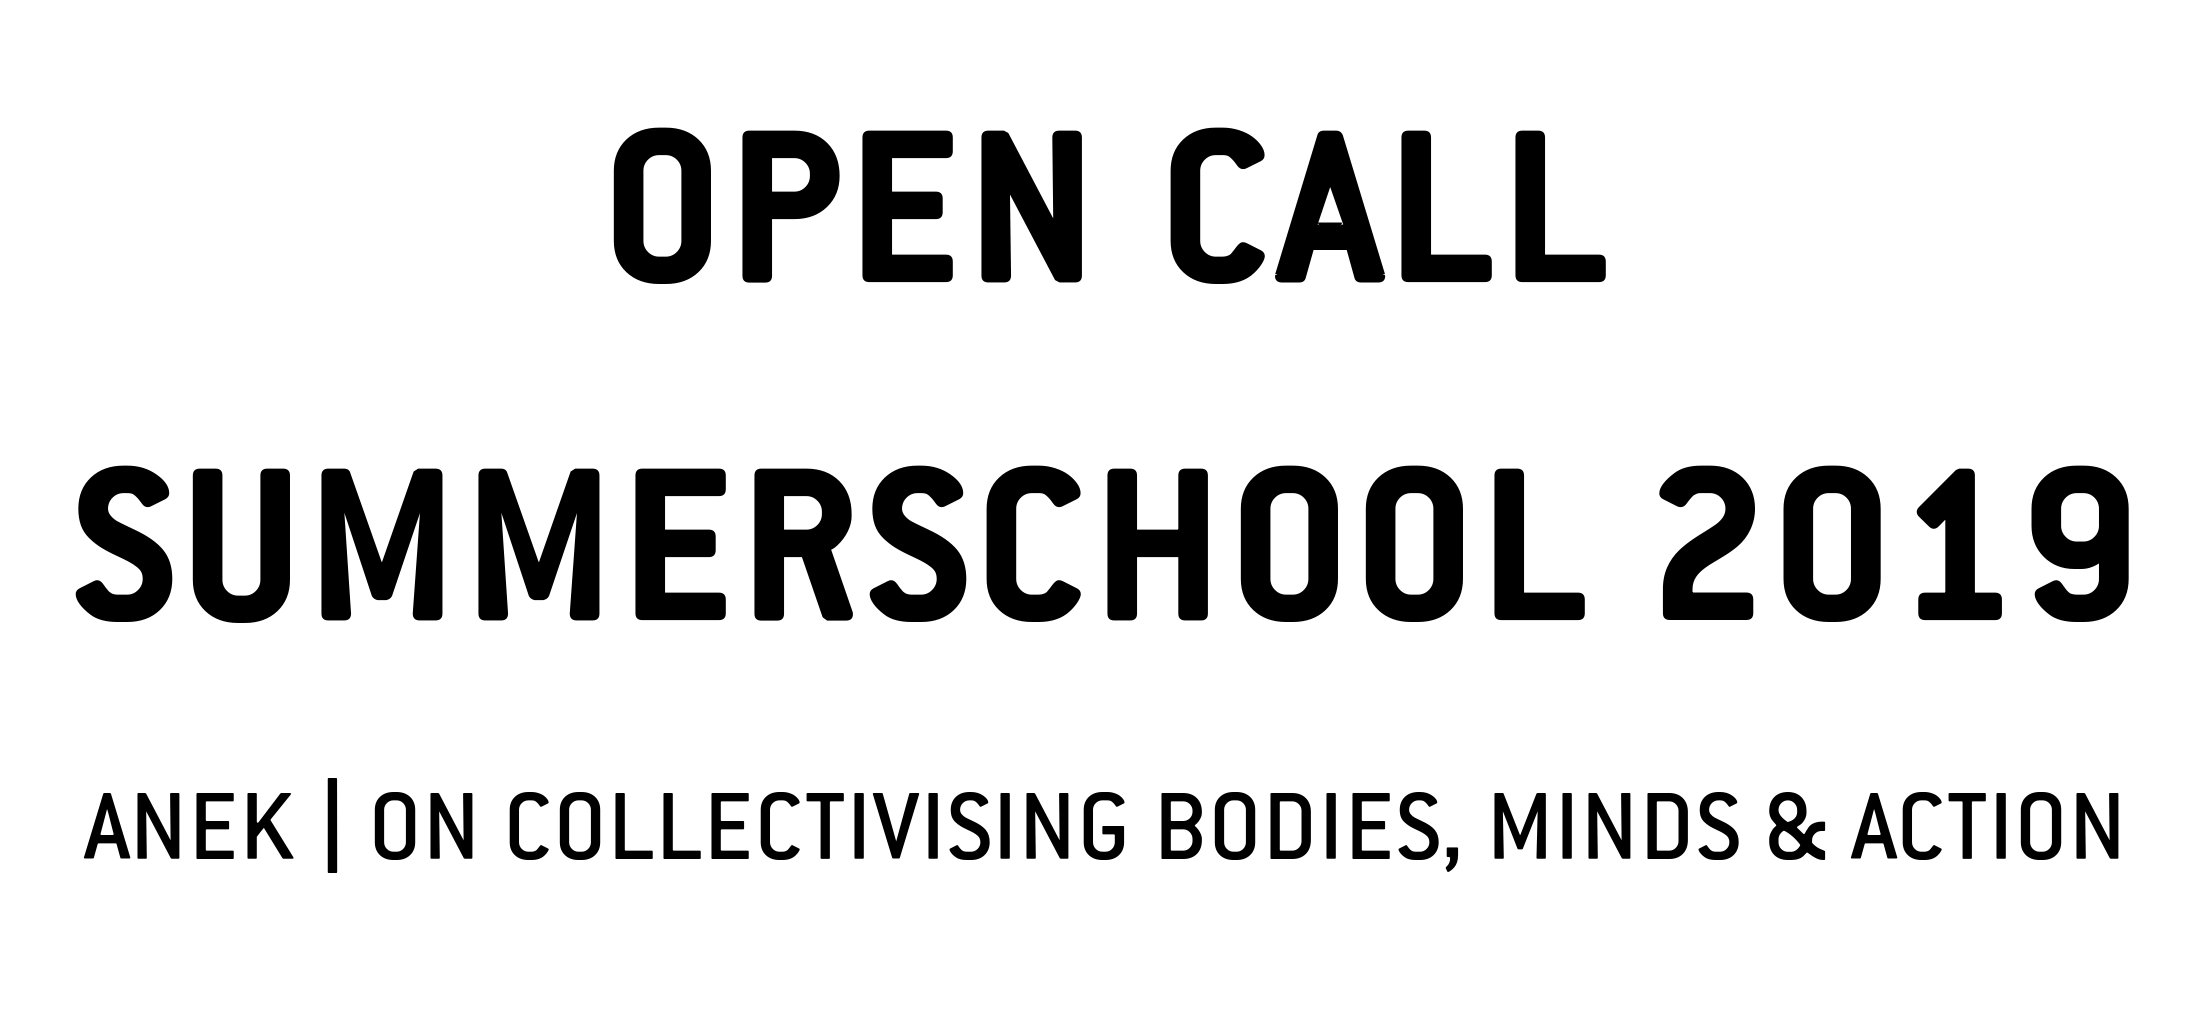 Open Call: Sommerschool 2019, ANEK | ON COLLECTIVISING BODIES, MINDS AND ACTION